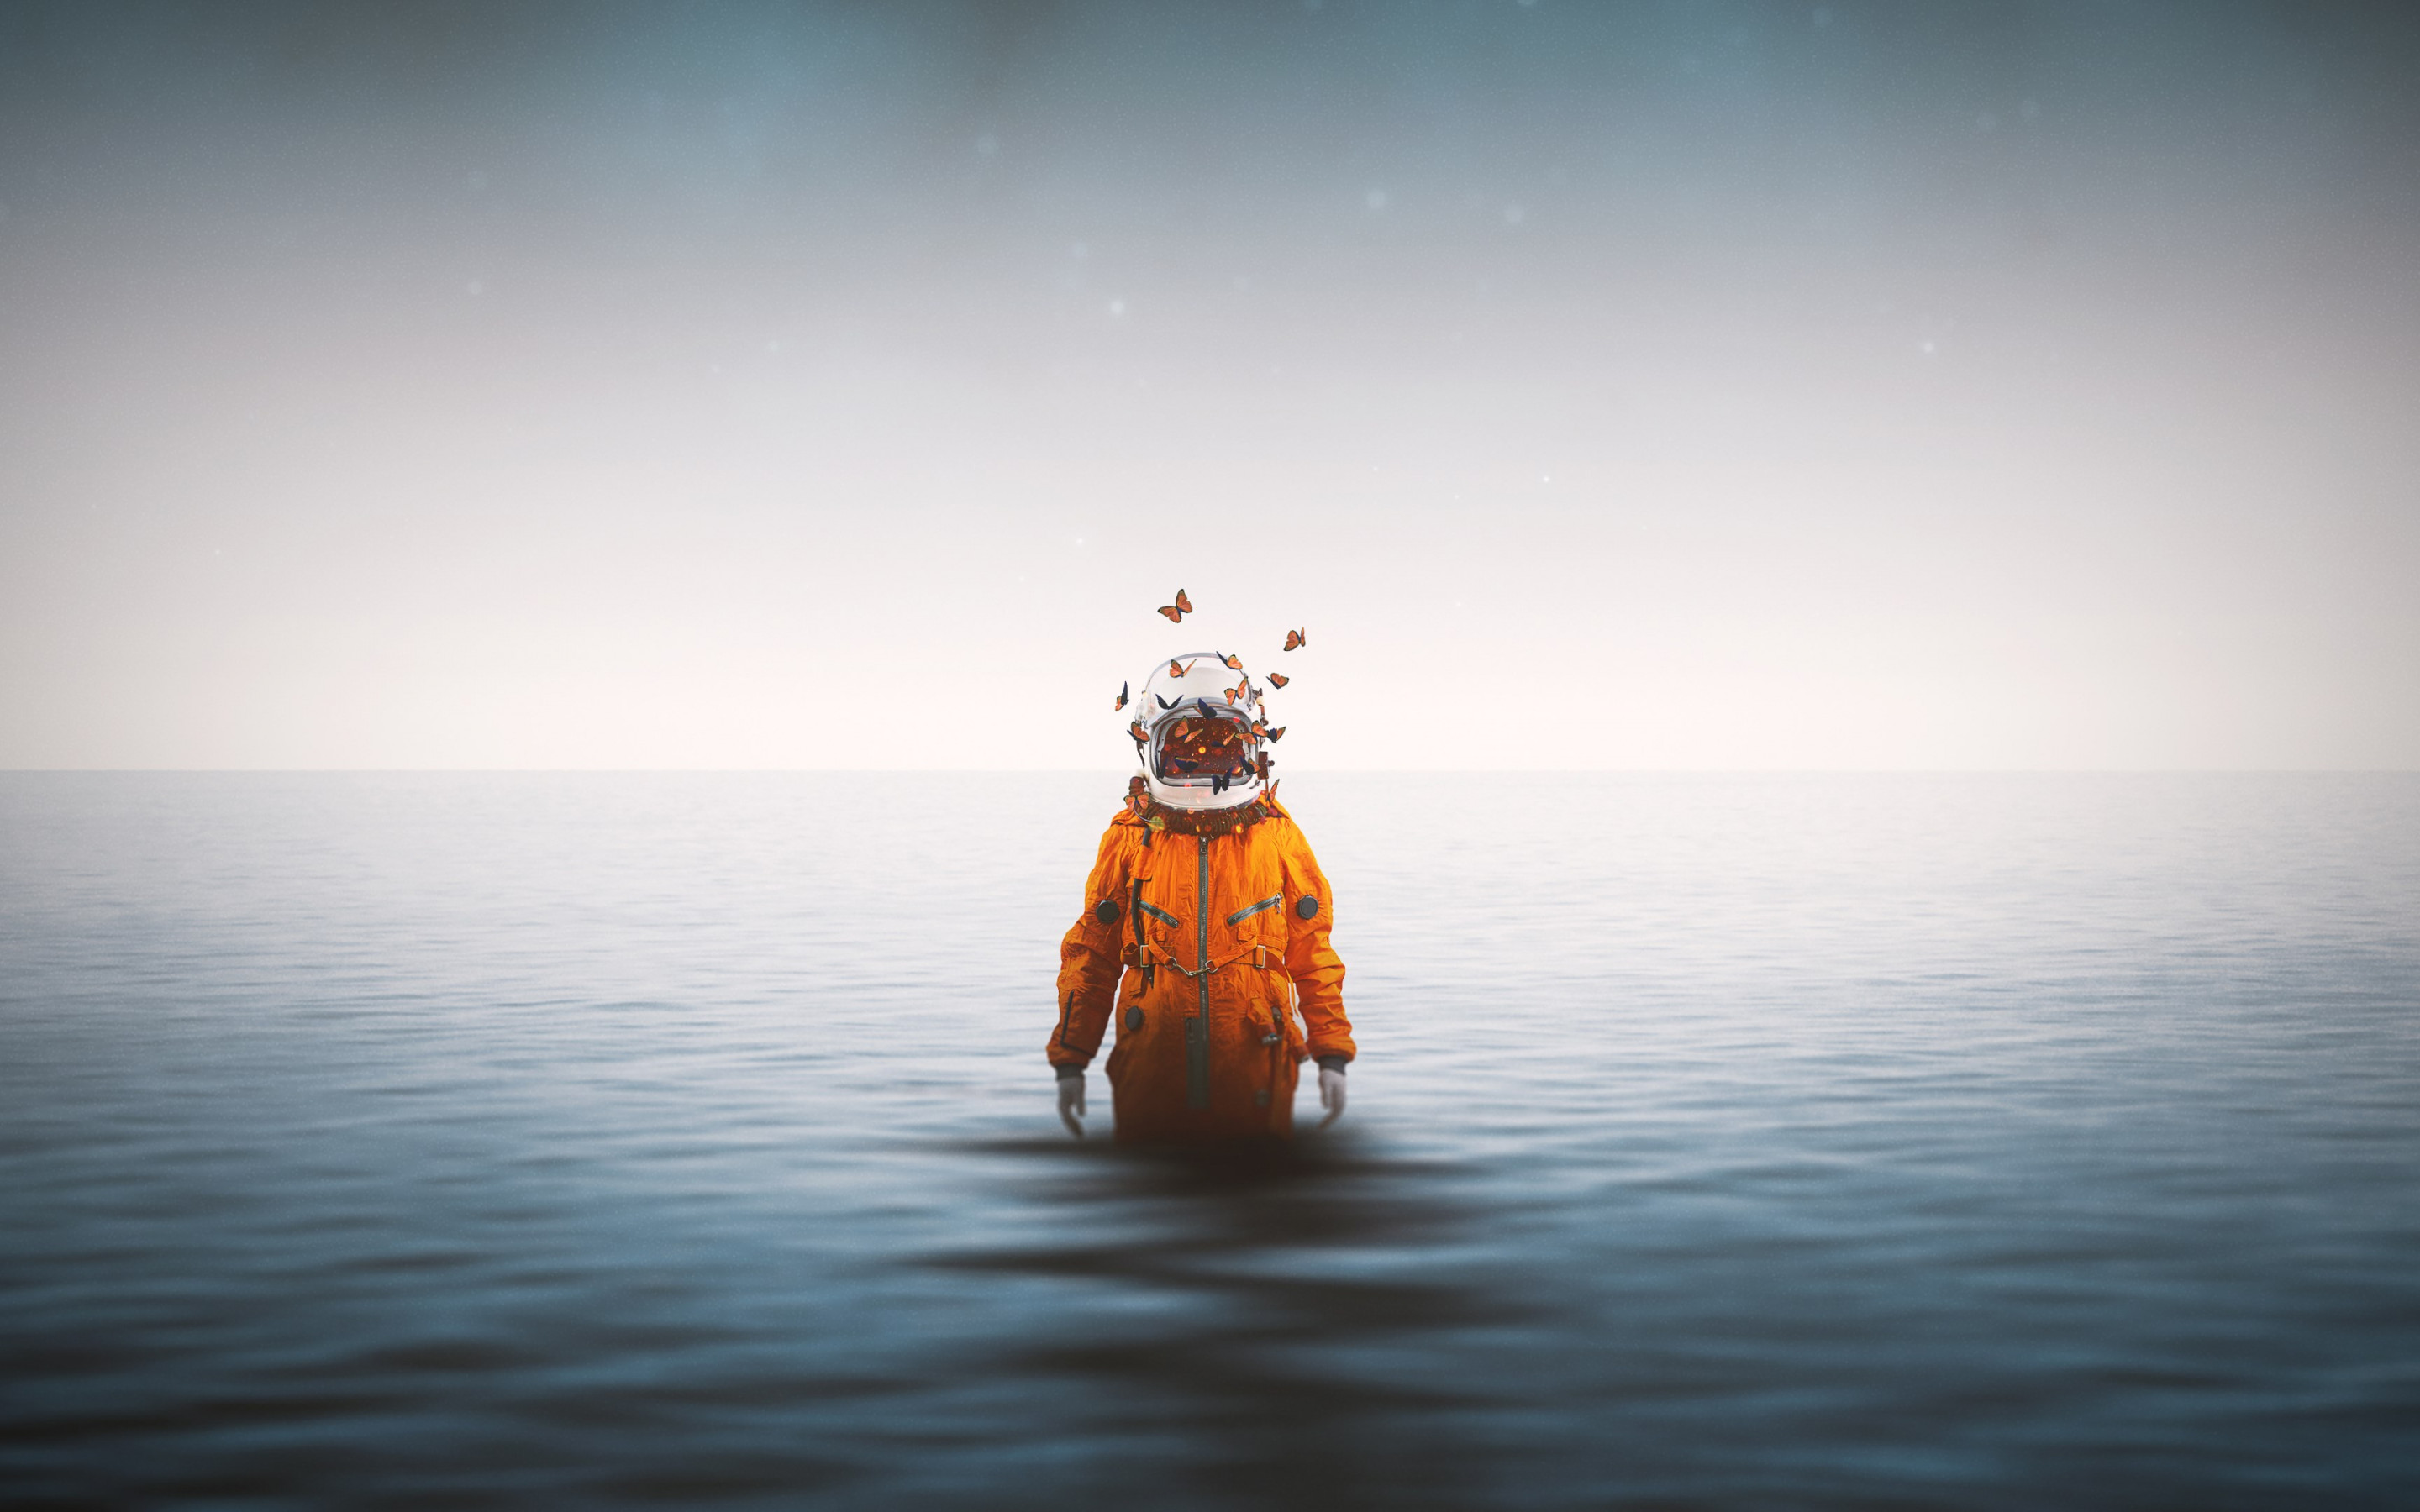 Lonely astronaut wallpaper 2880x1800